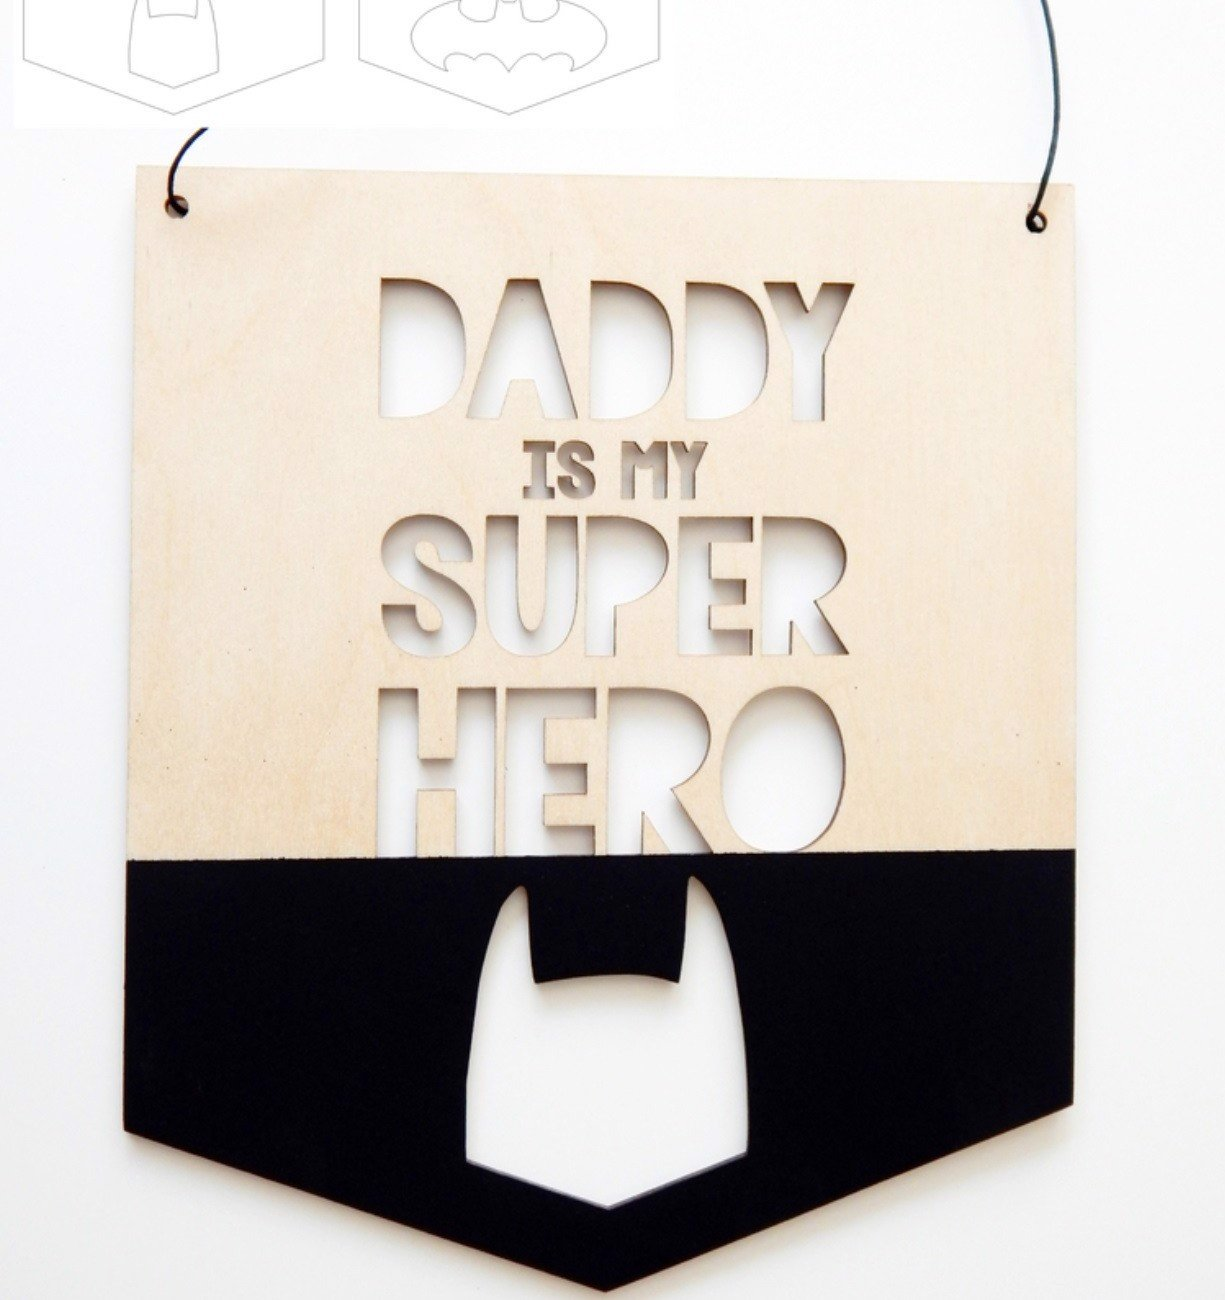 BẢNG DAD IS MY HERO